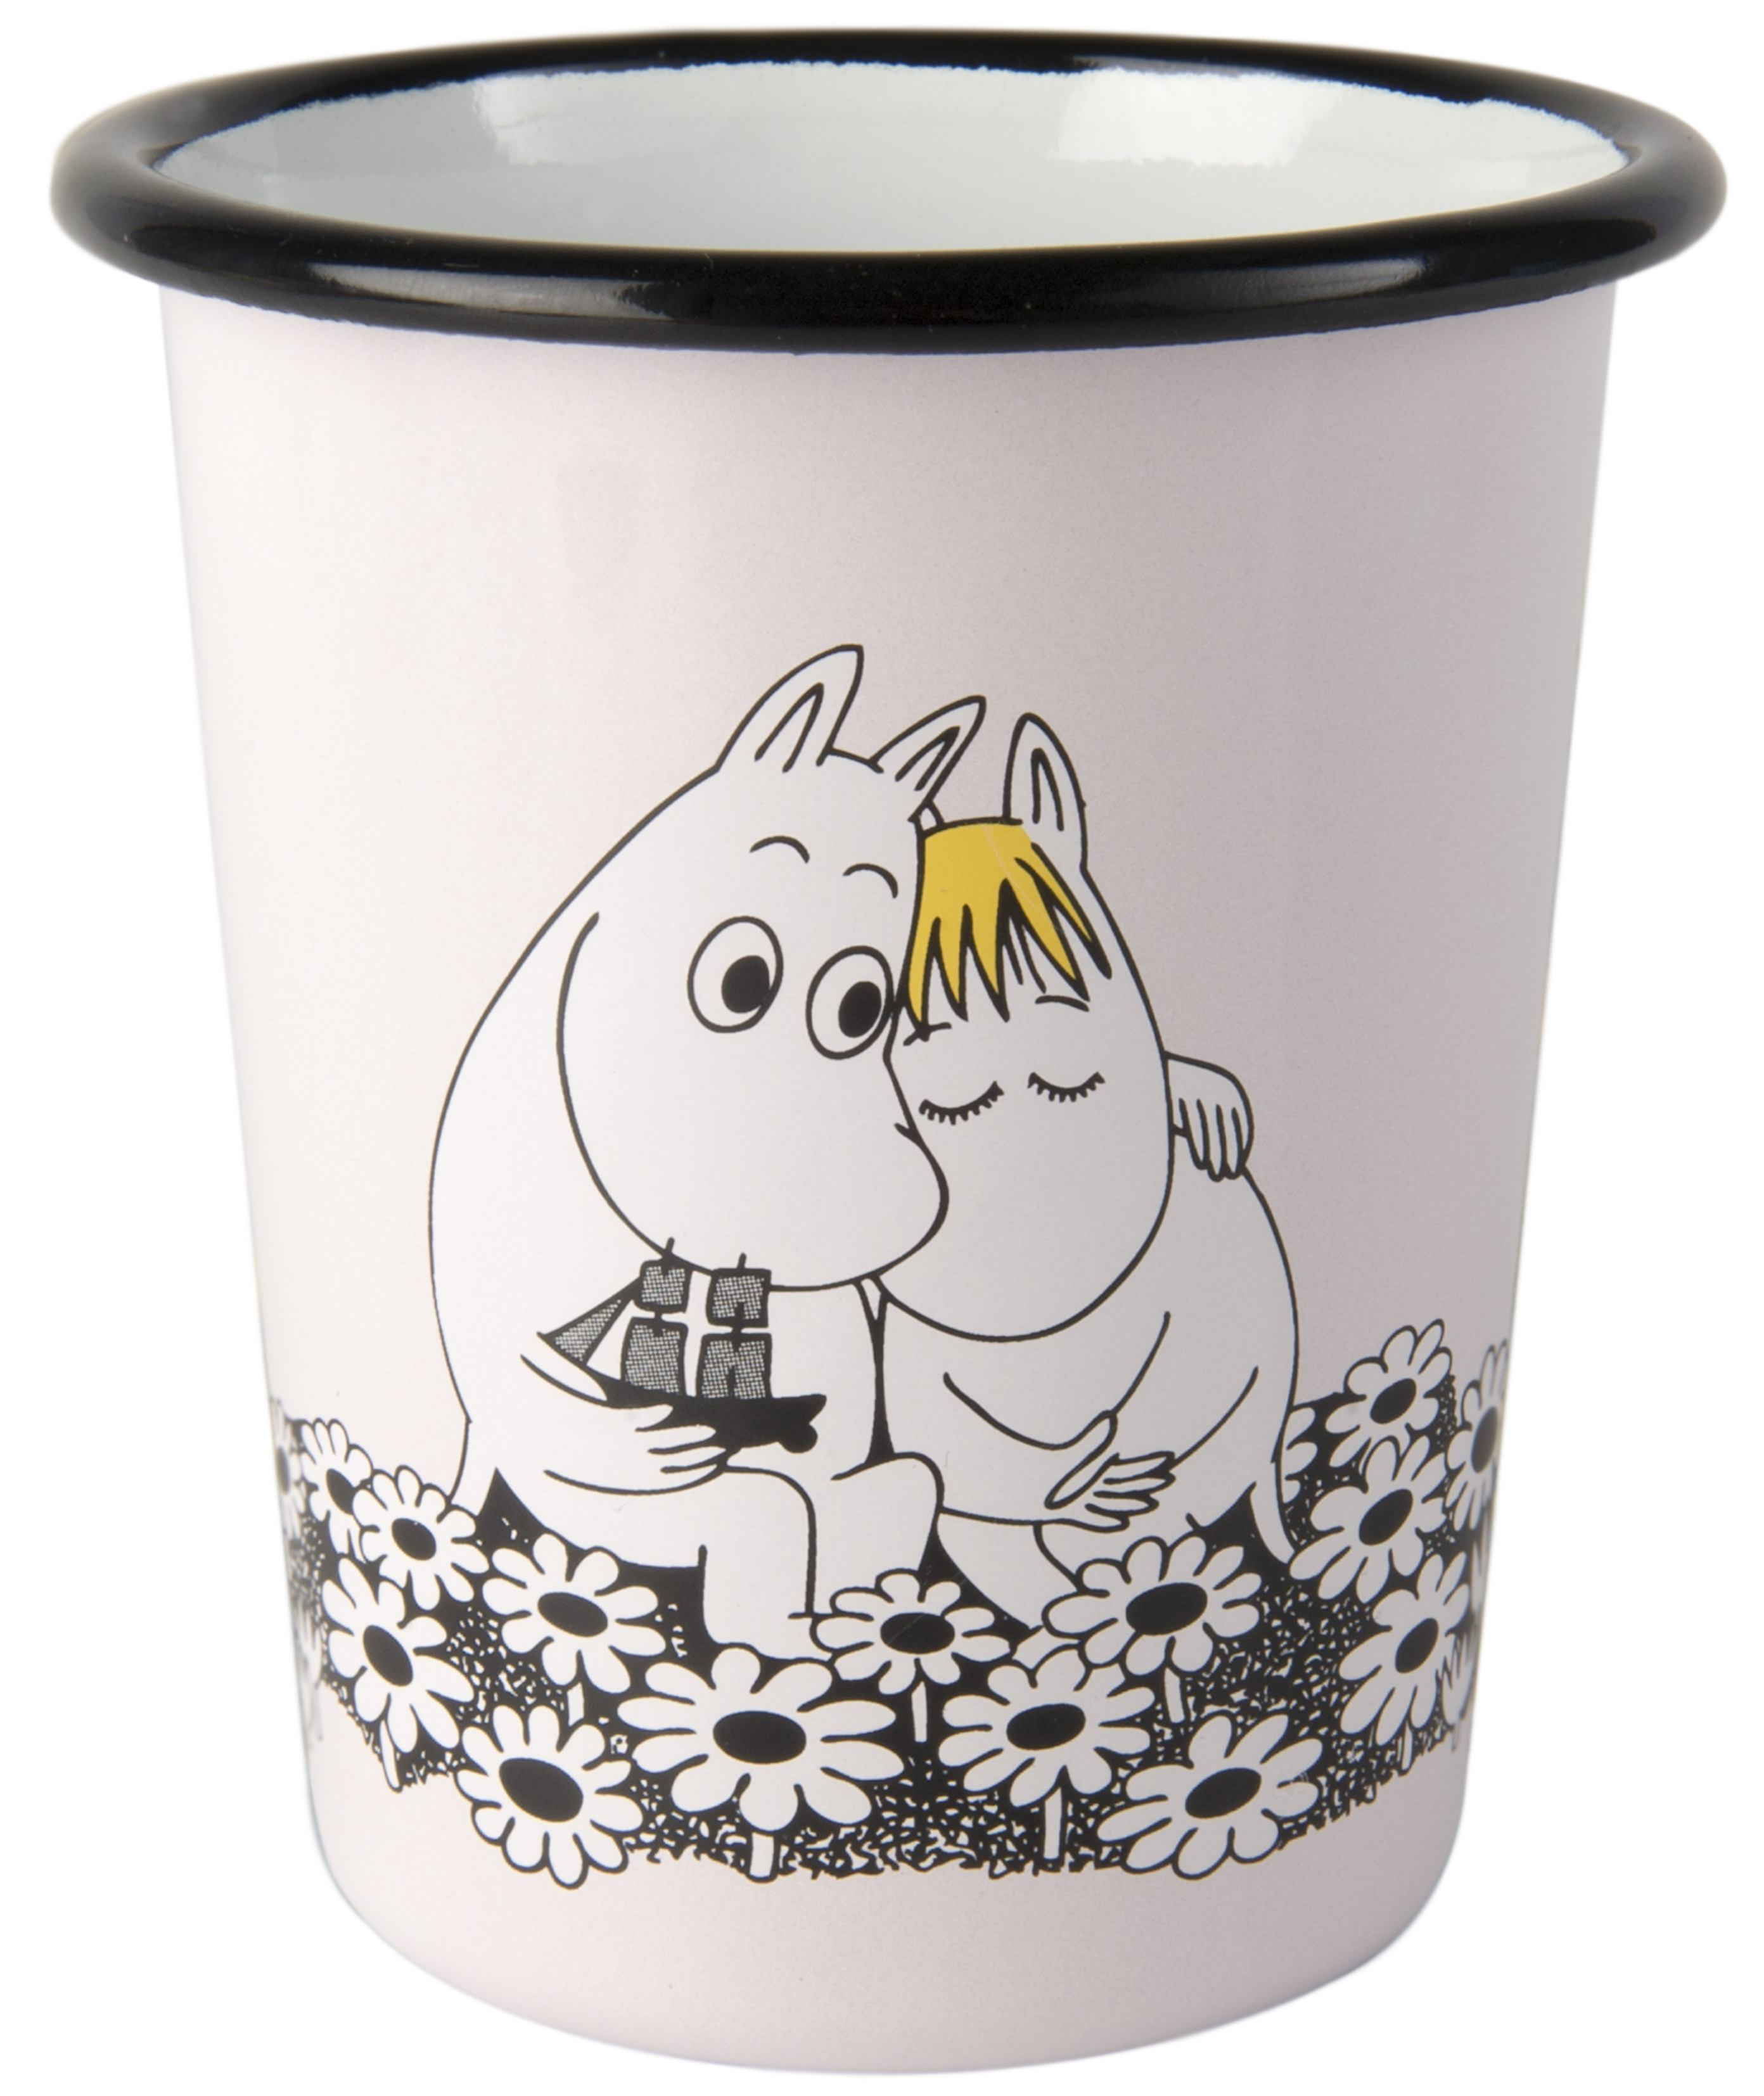 Muurla enamel tumbler 4dl Retro Together forever